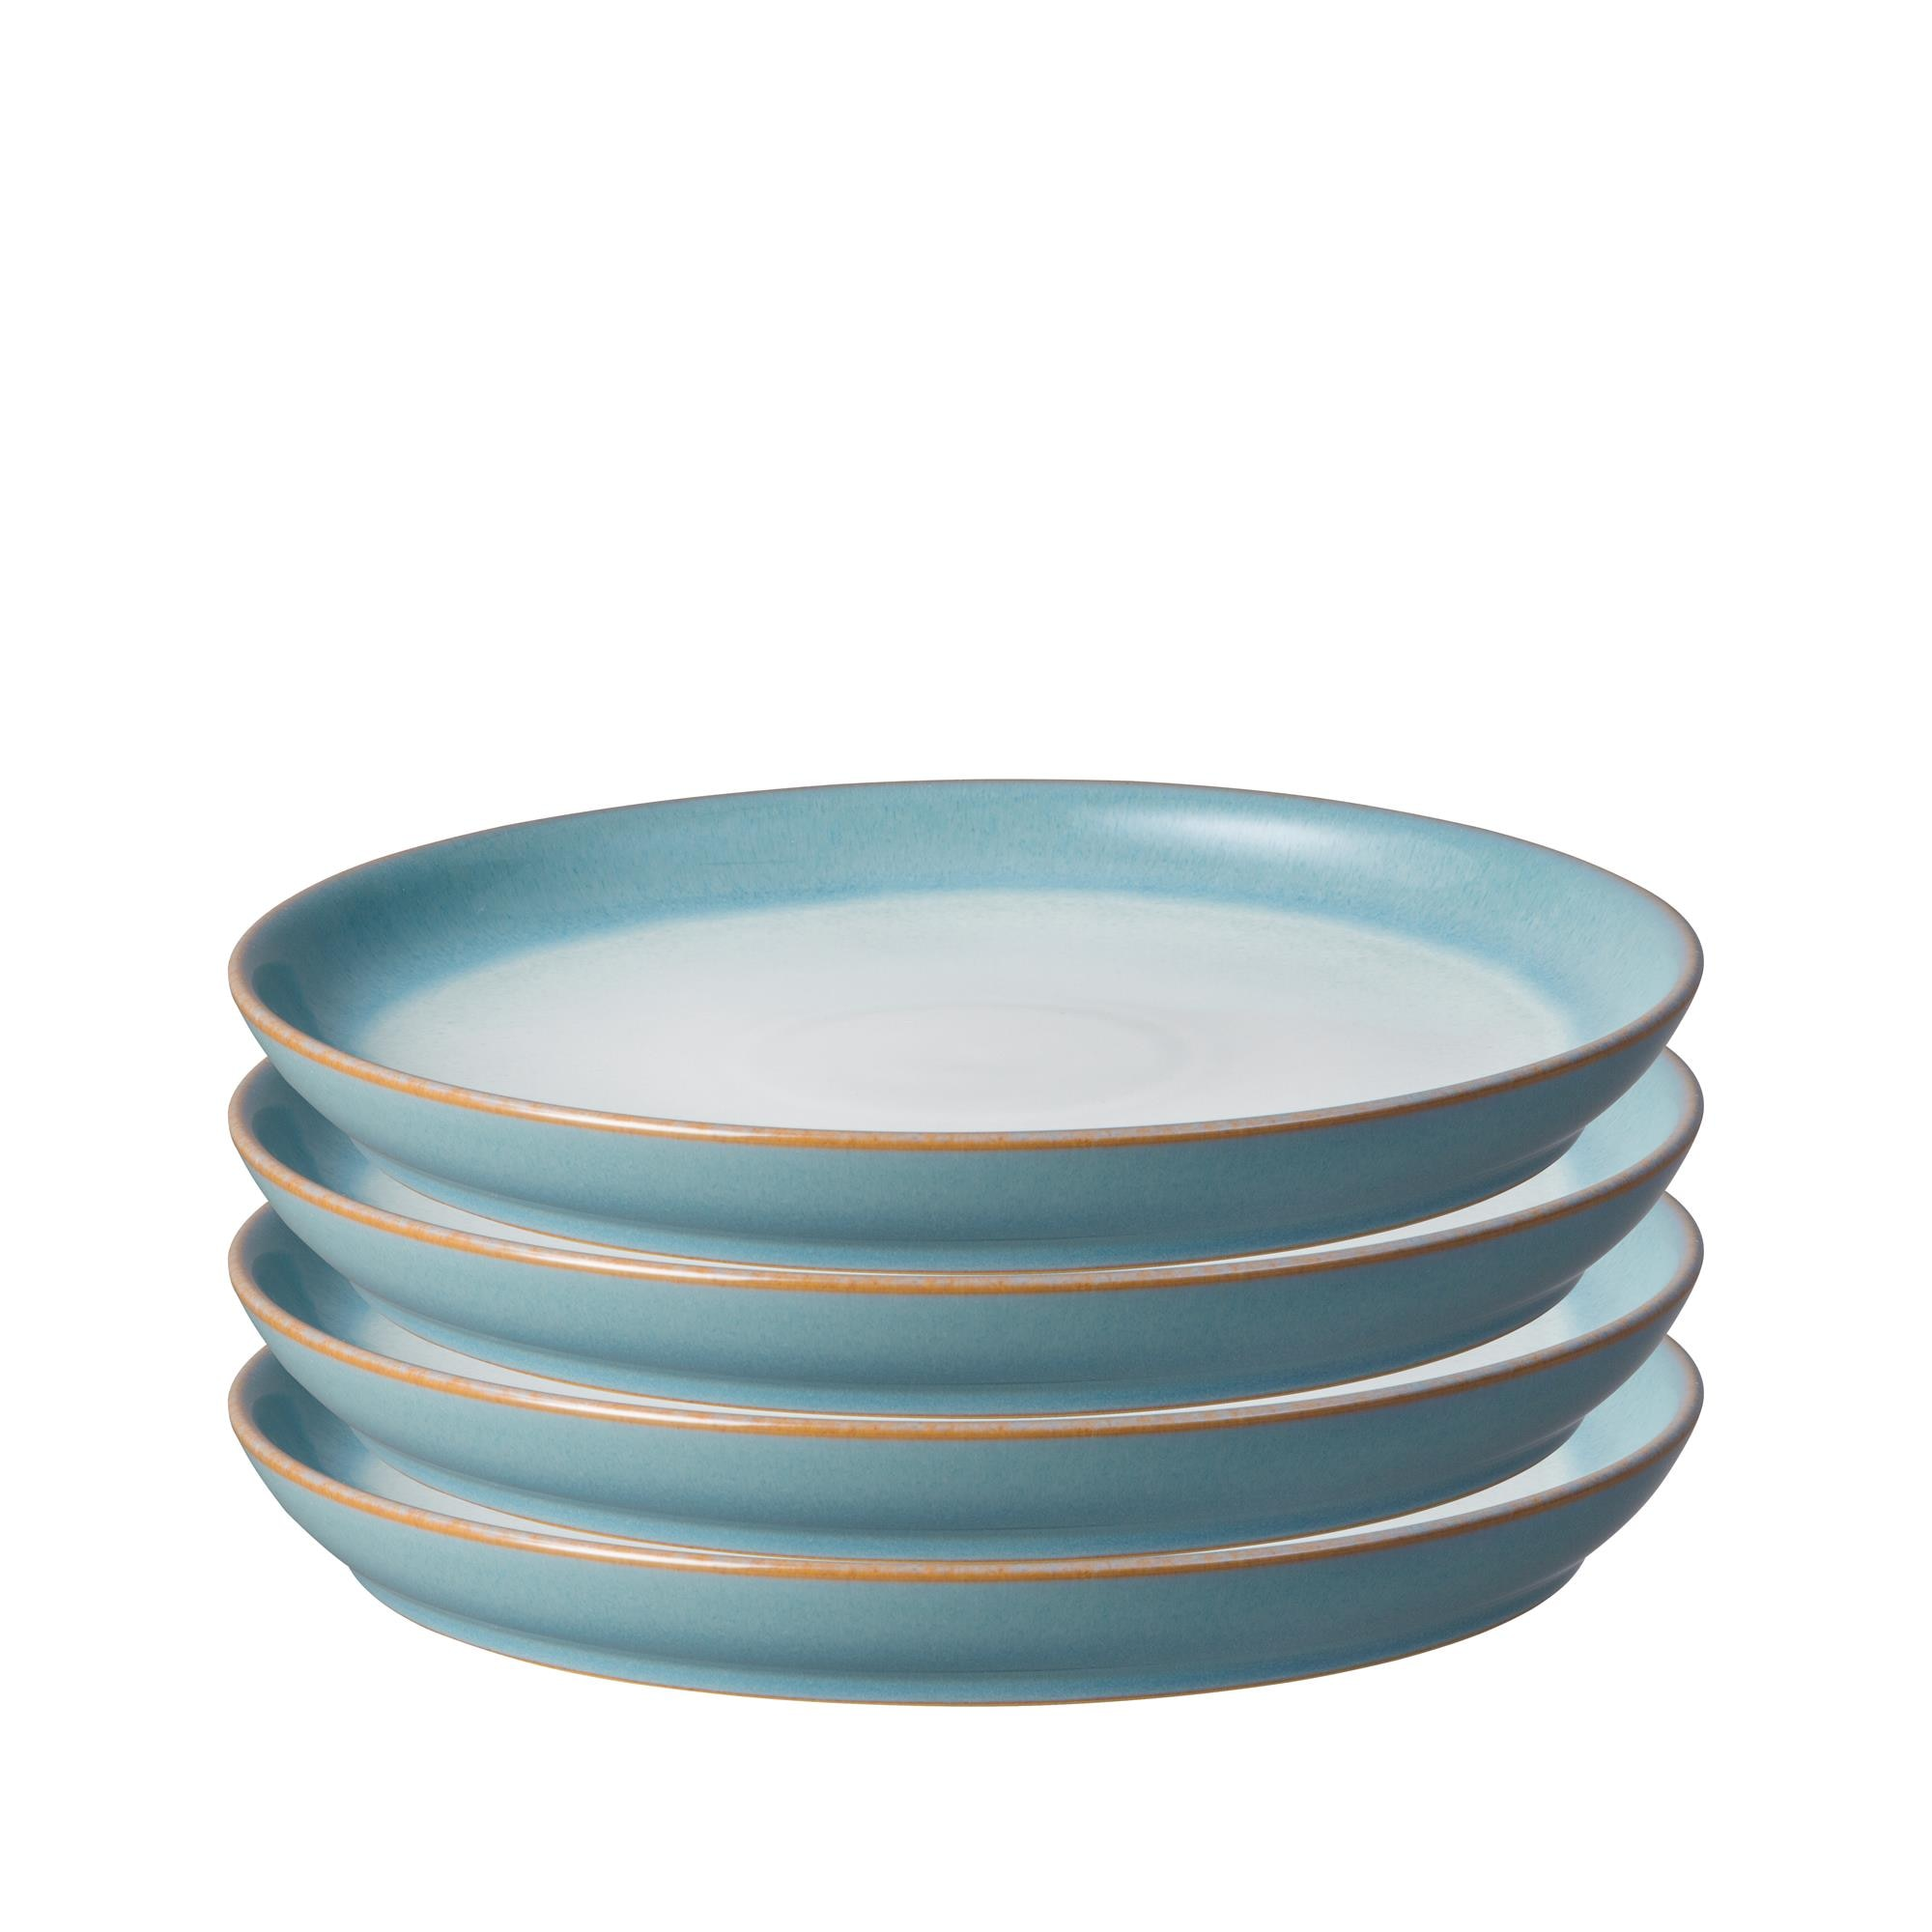 Compare prices for Azure Haze Set of 4 Coupe Dinner Plates